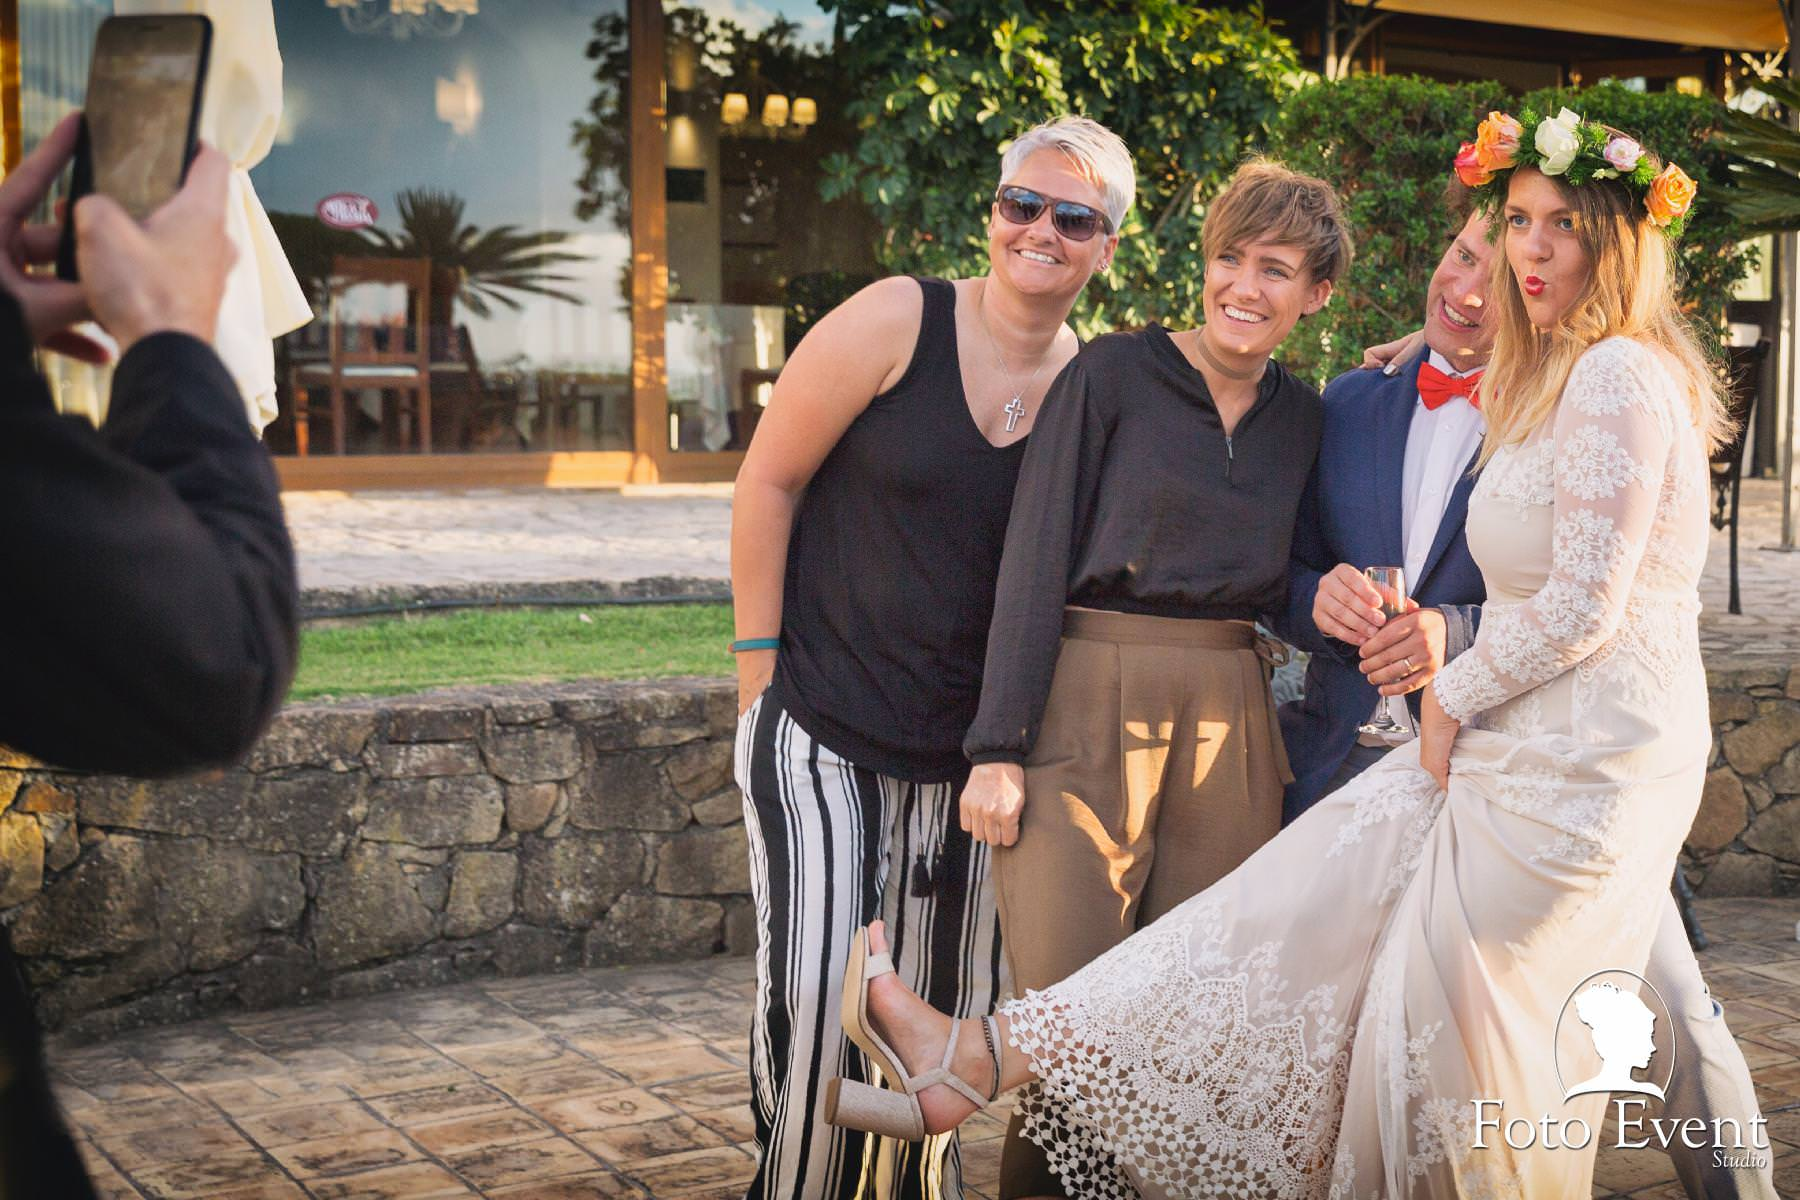 Destination wedding sicily Elisa Bellanti Foto Event Studio 248